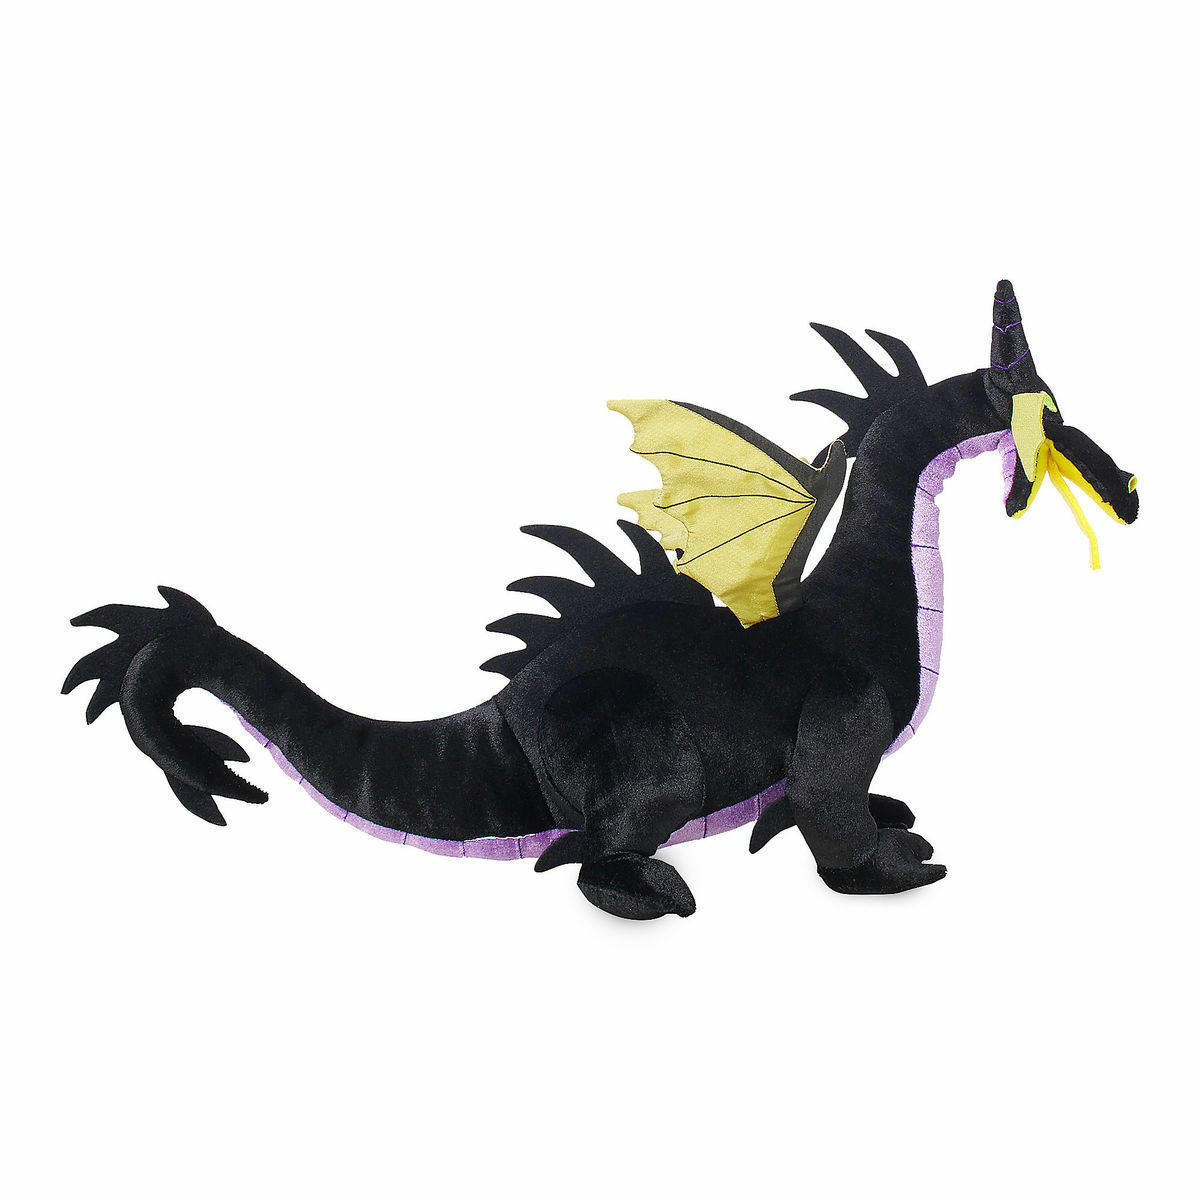 Disney Maleficent as Dragon Plush Sleeping Beauty Medium 19'' New with Tags